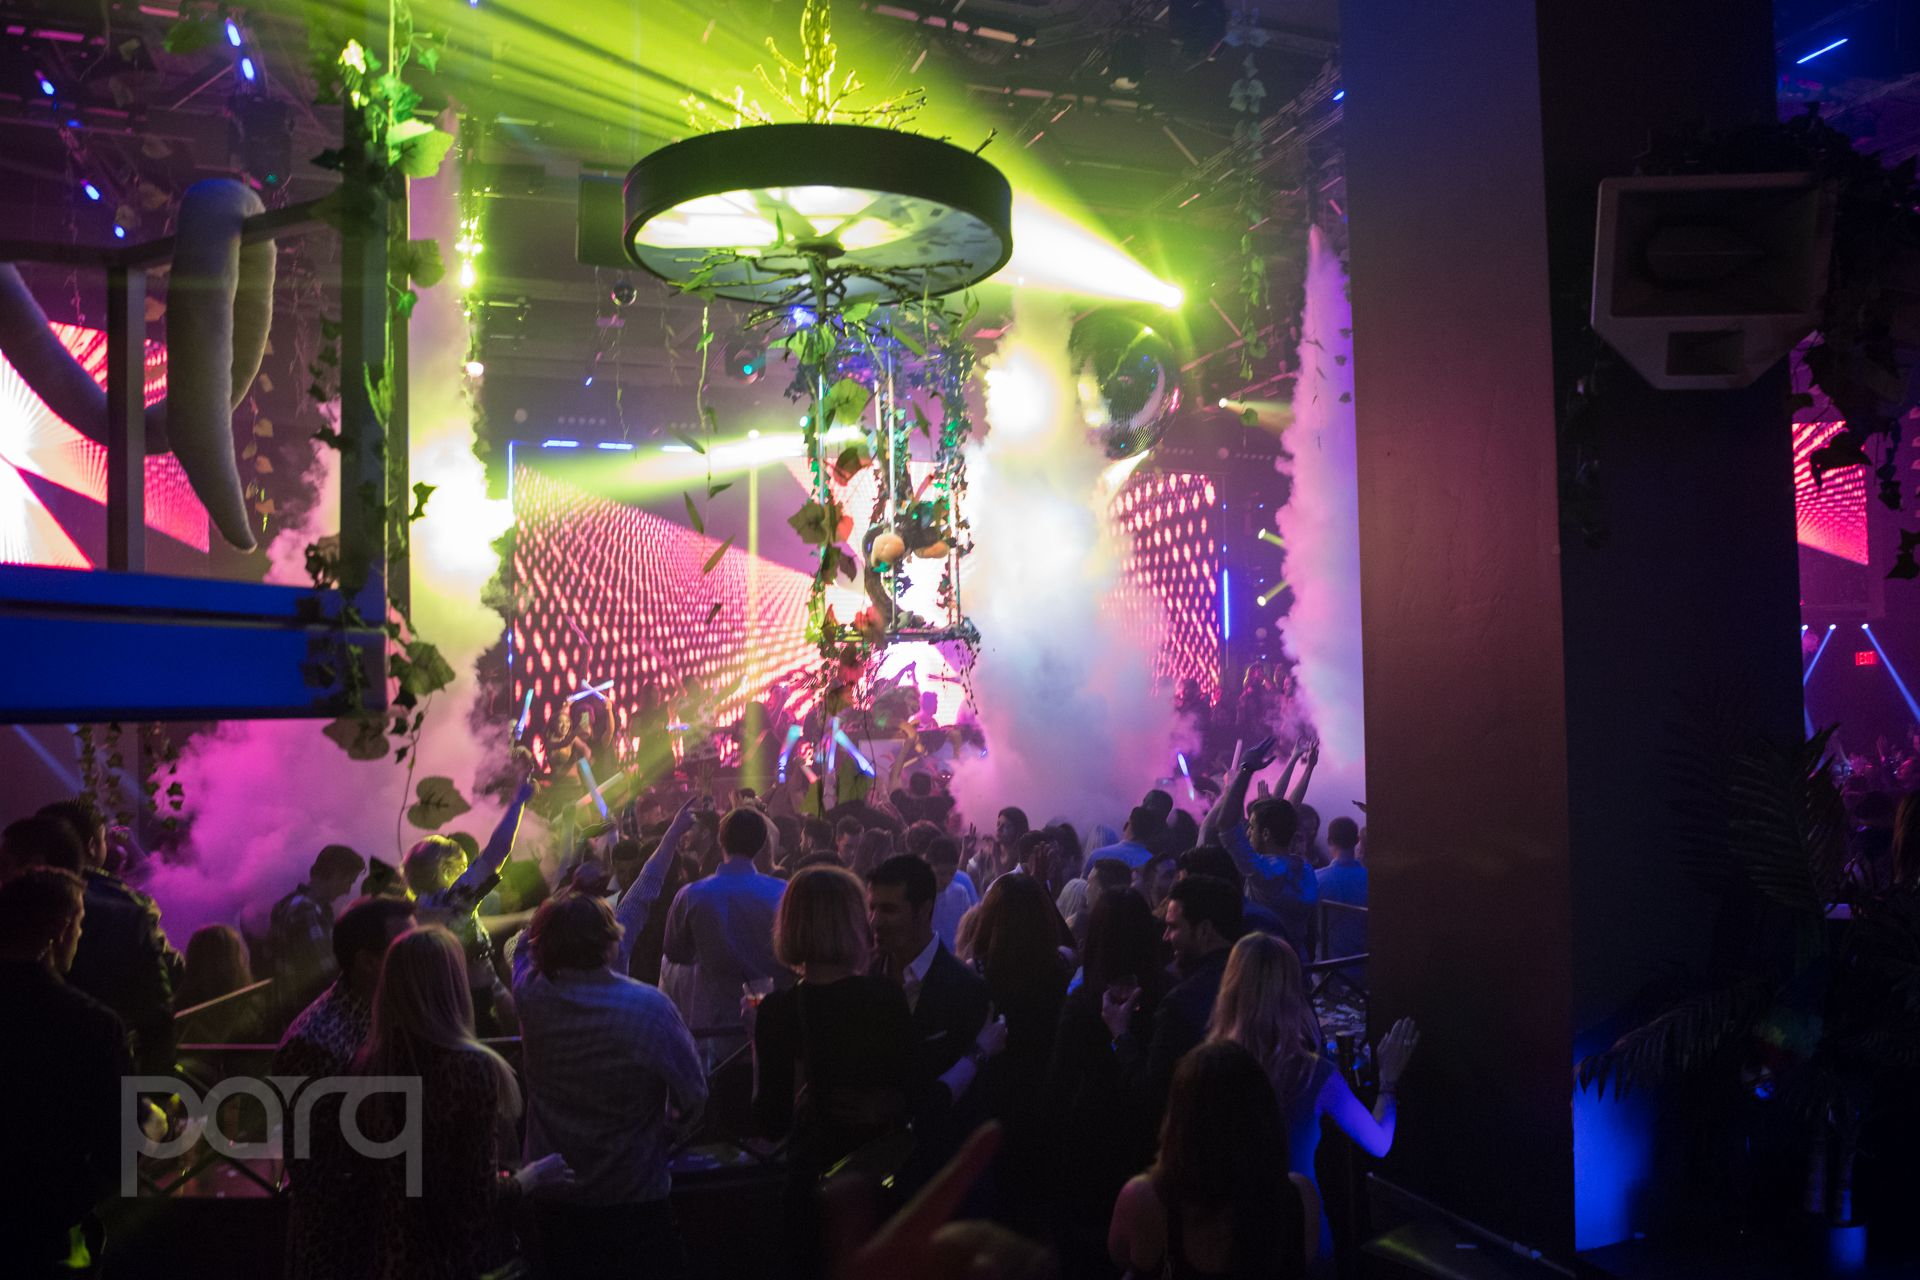 San-Diego-Nightclub-Zoo Funktion-43.jpg